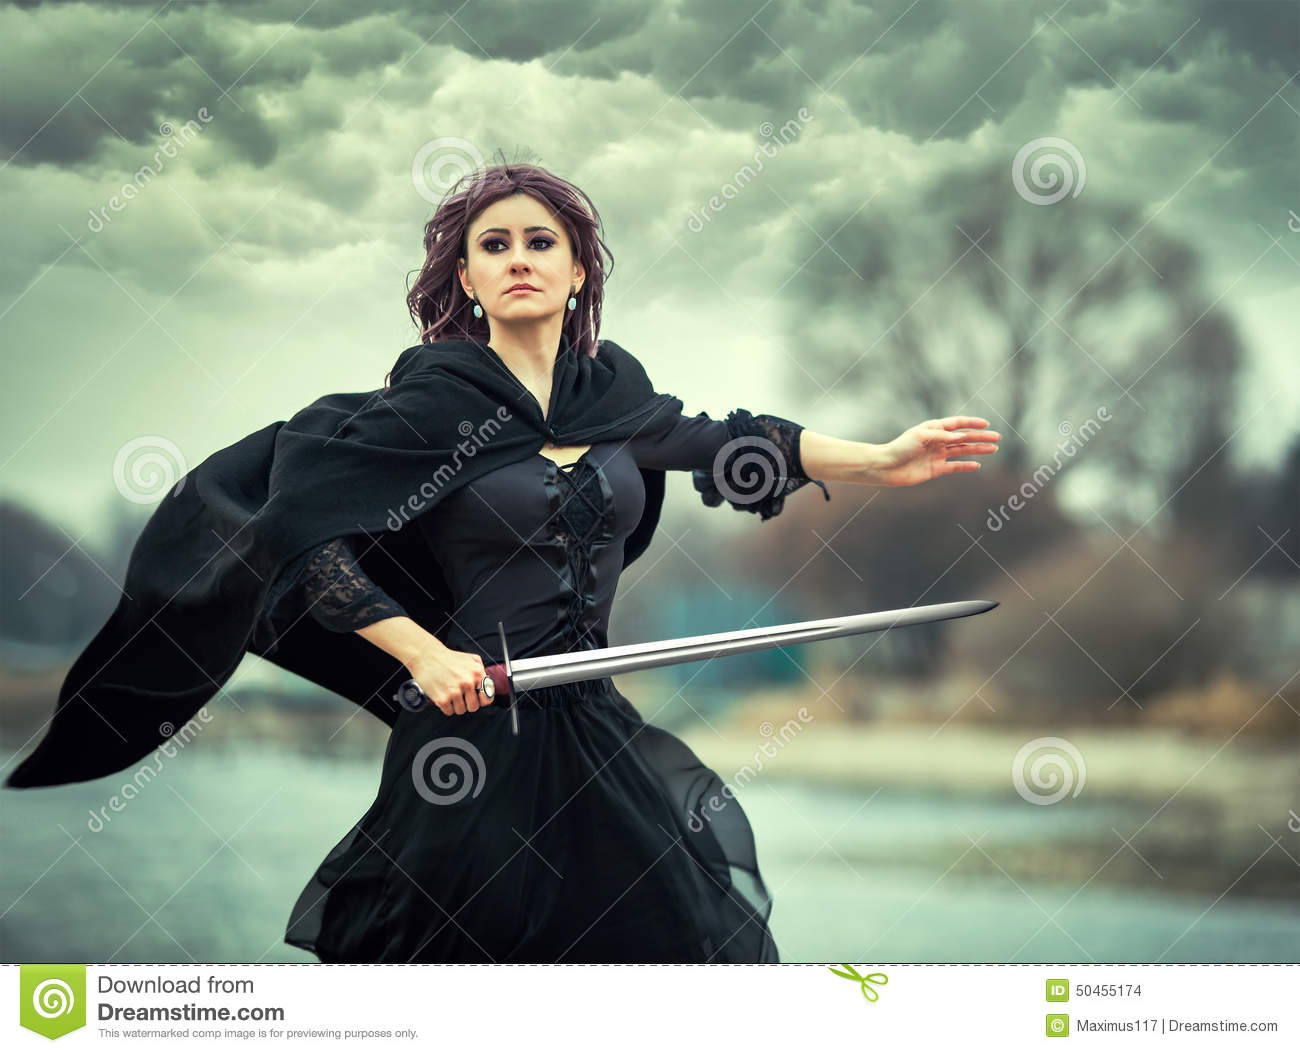 The Beautiful Gothic Girl With Sword Stock Photo - Image: 50455174